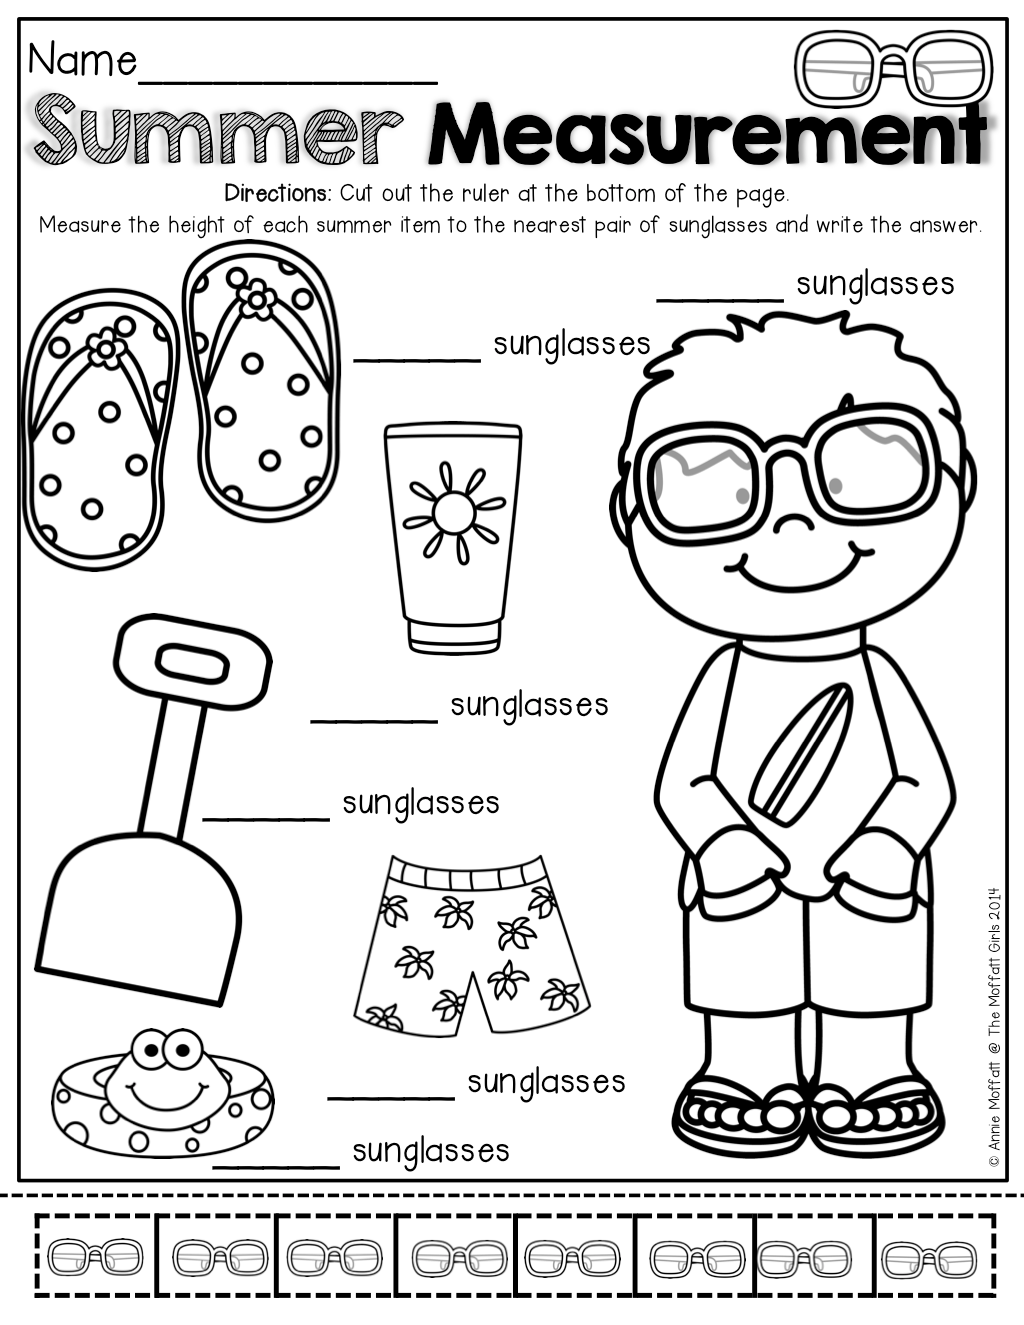 Non Standard Measurement And Other Fun Summer Review Pages